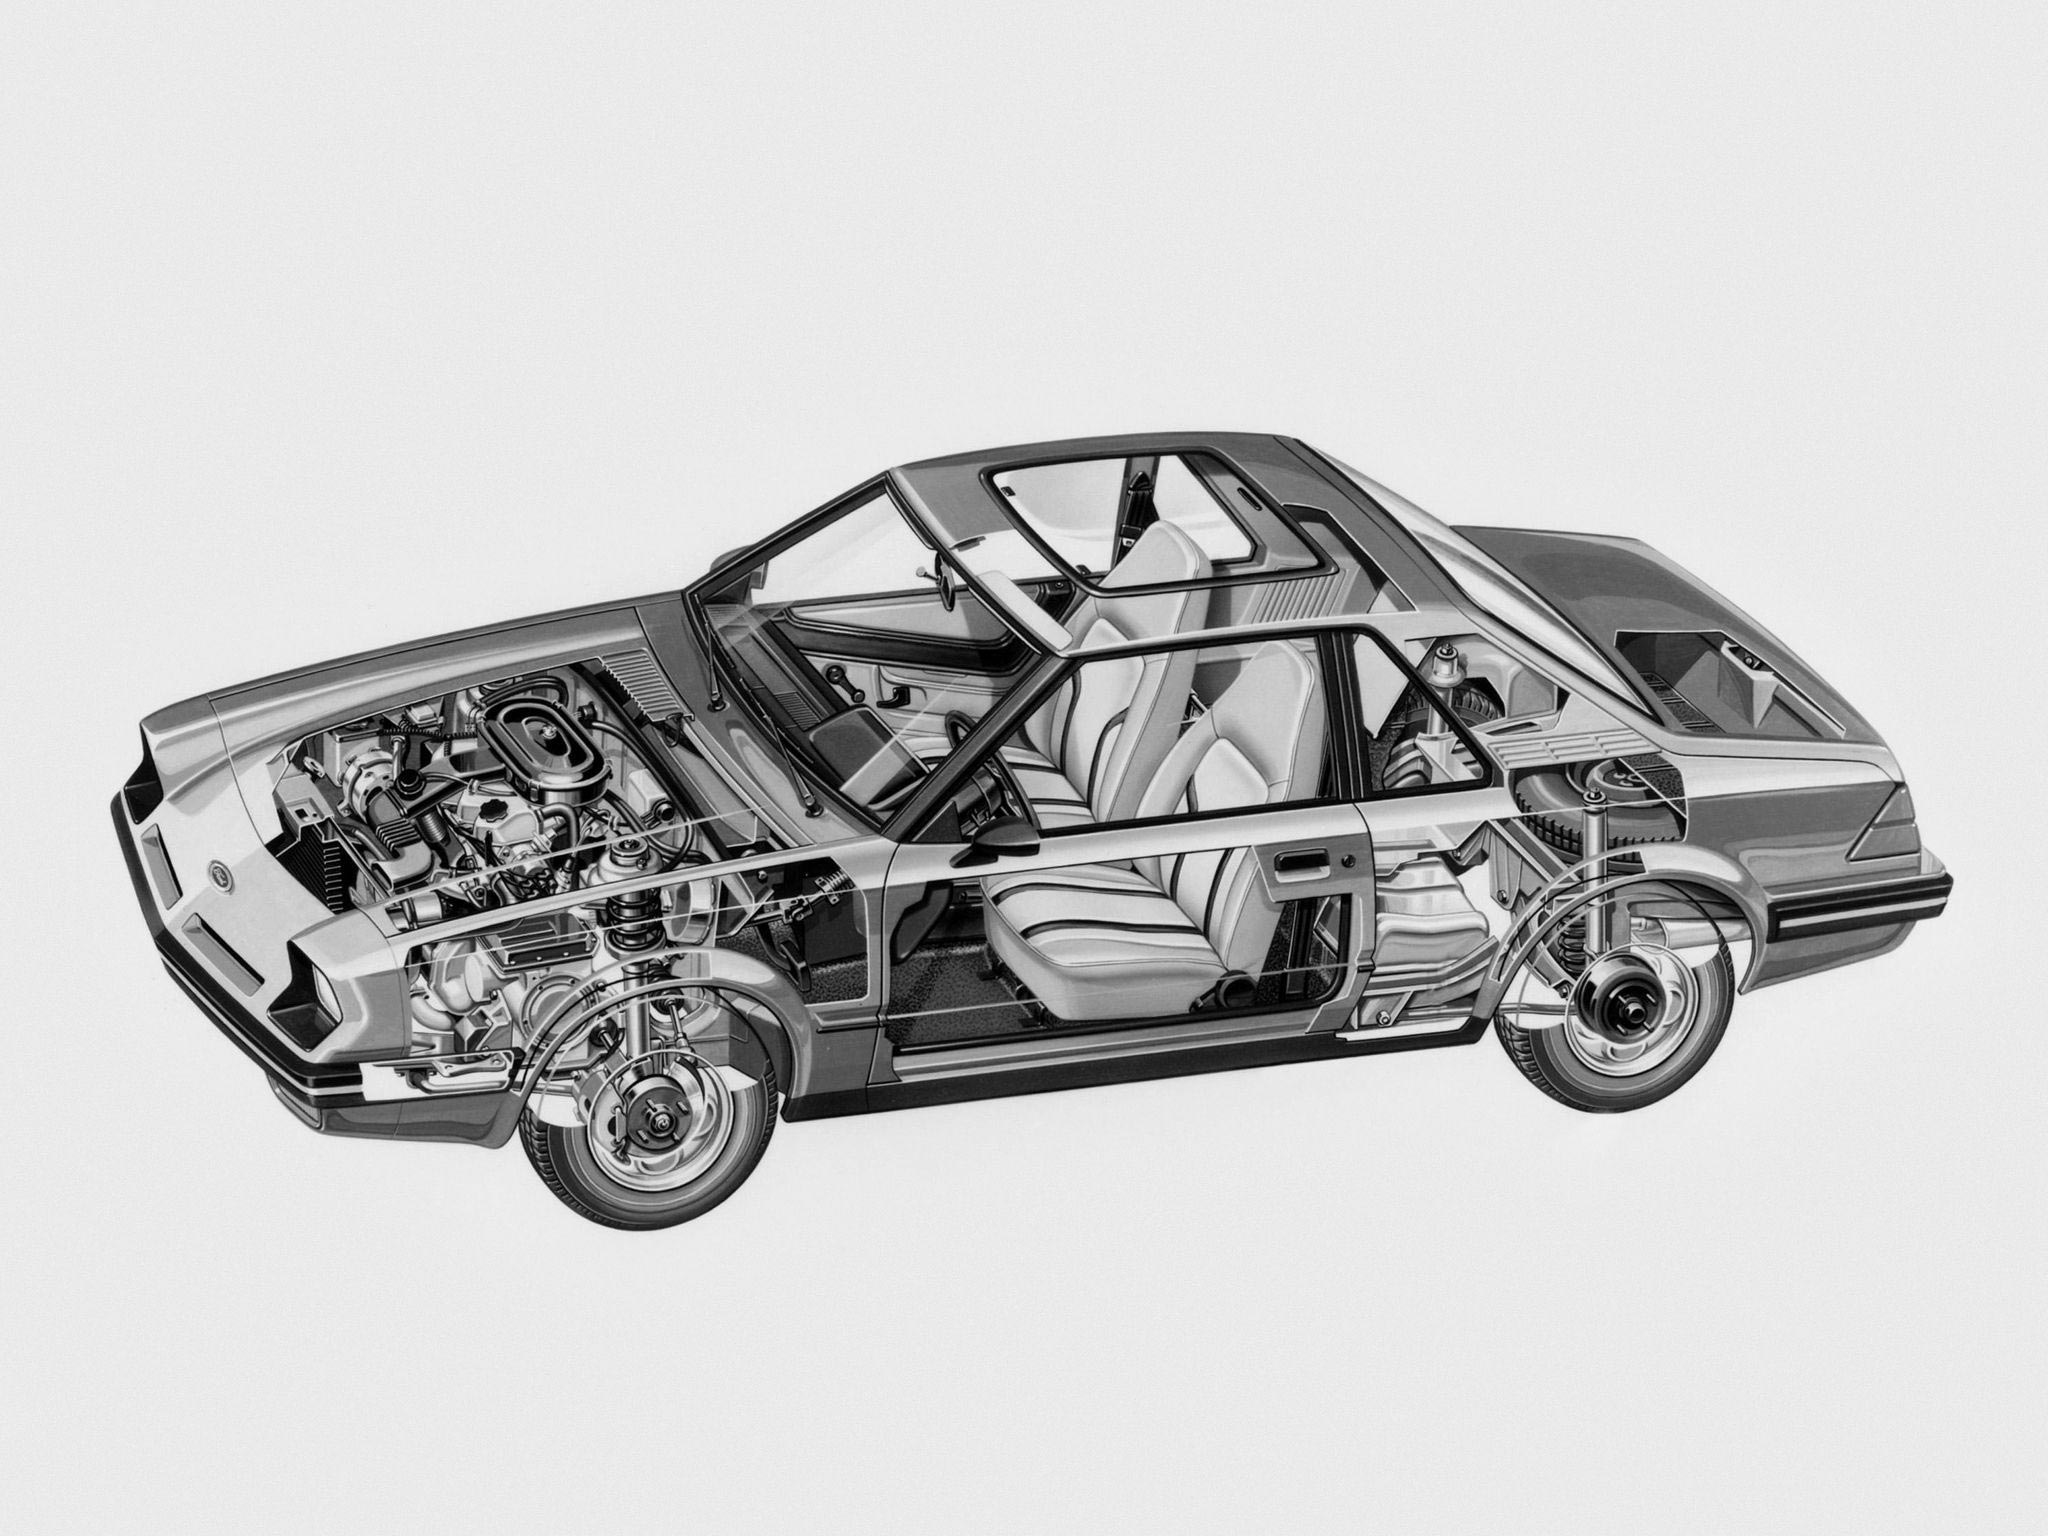 Ford EXP cutaway drawing